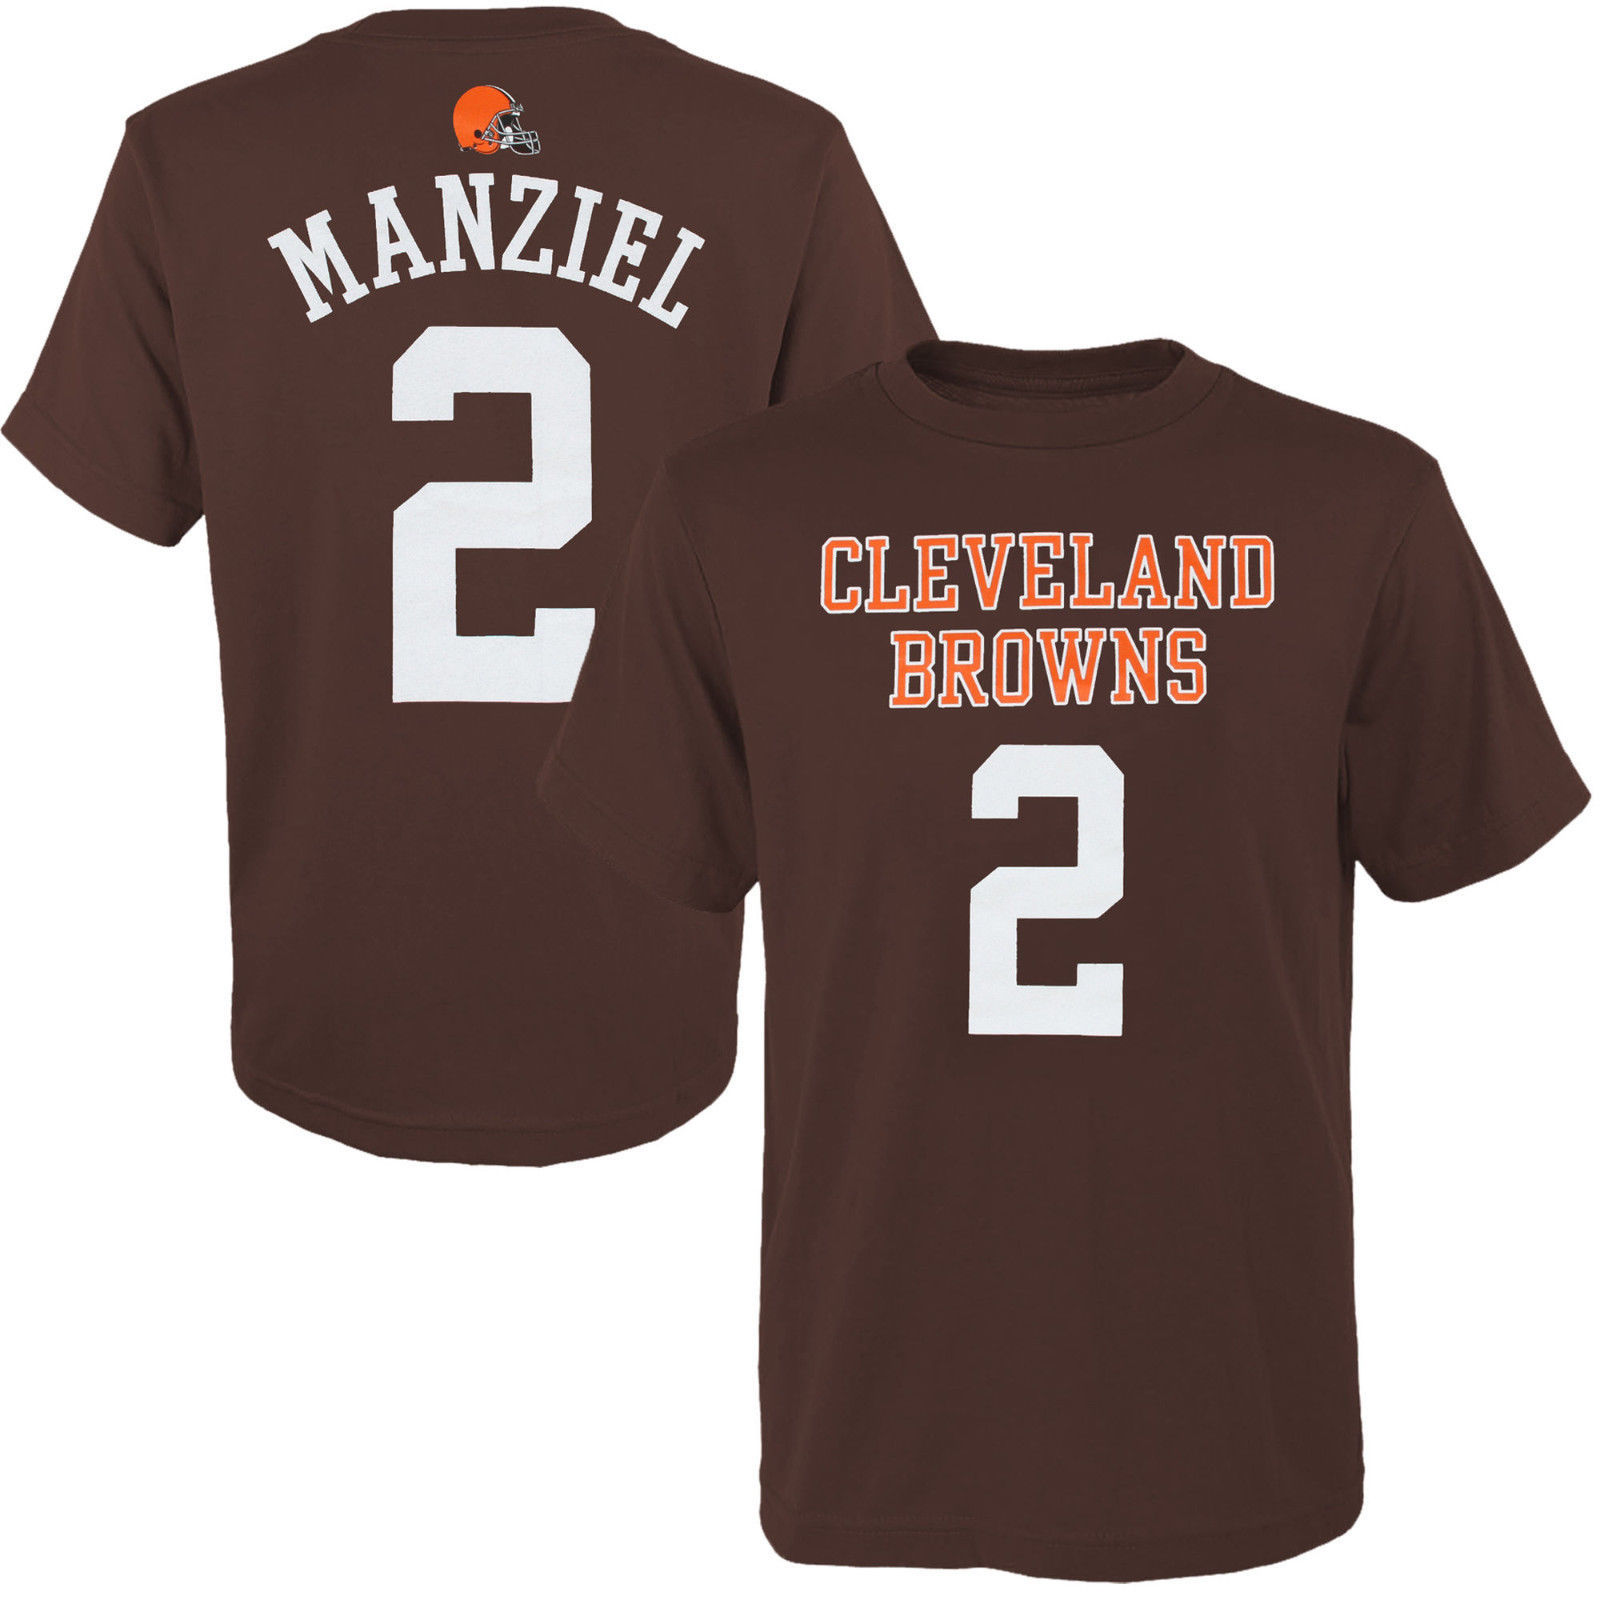 Boy's Johnny Manziel Shirt Cleveland Browns Youth Player Tee NFL Football